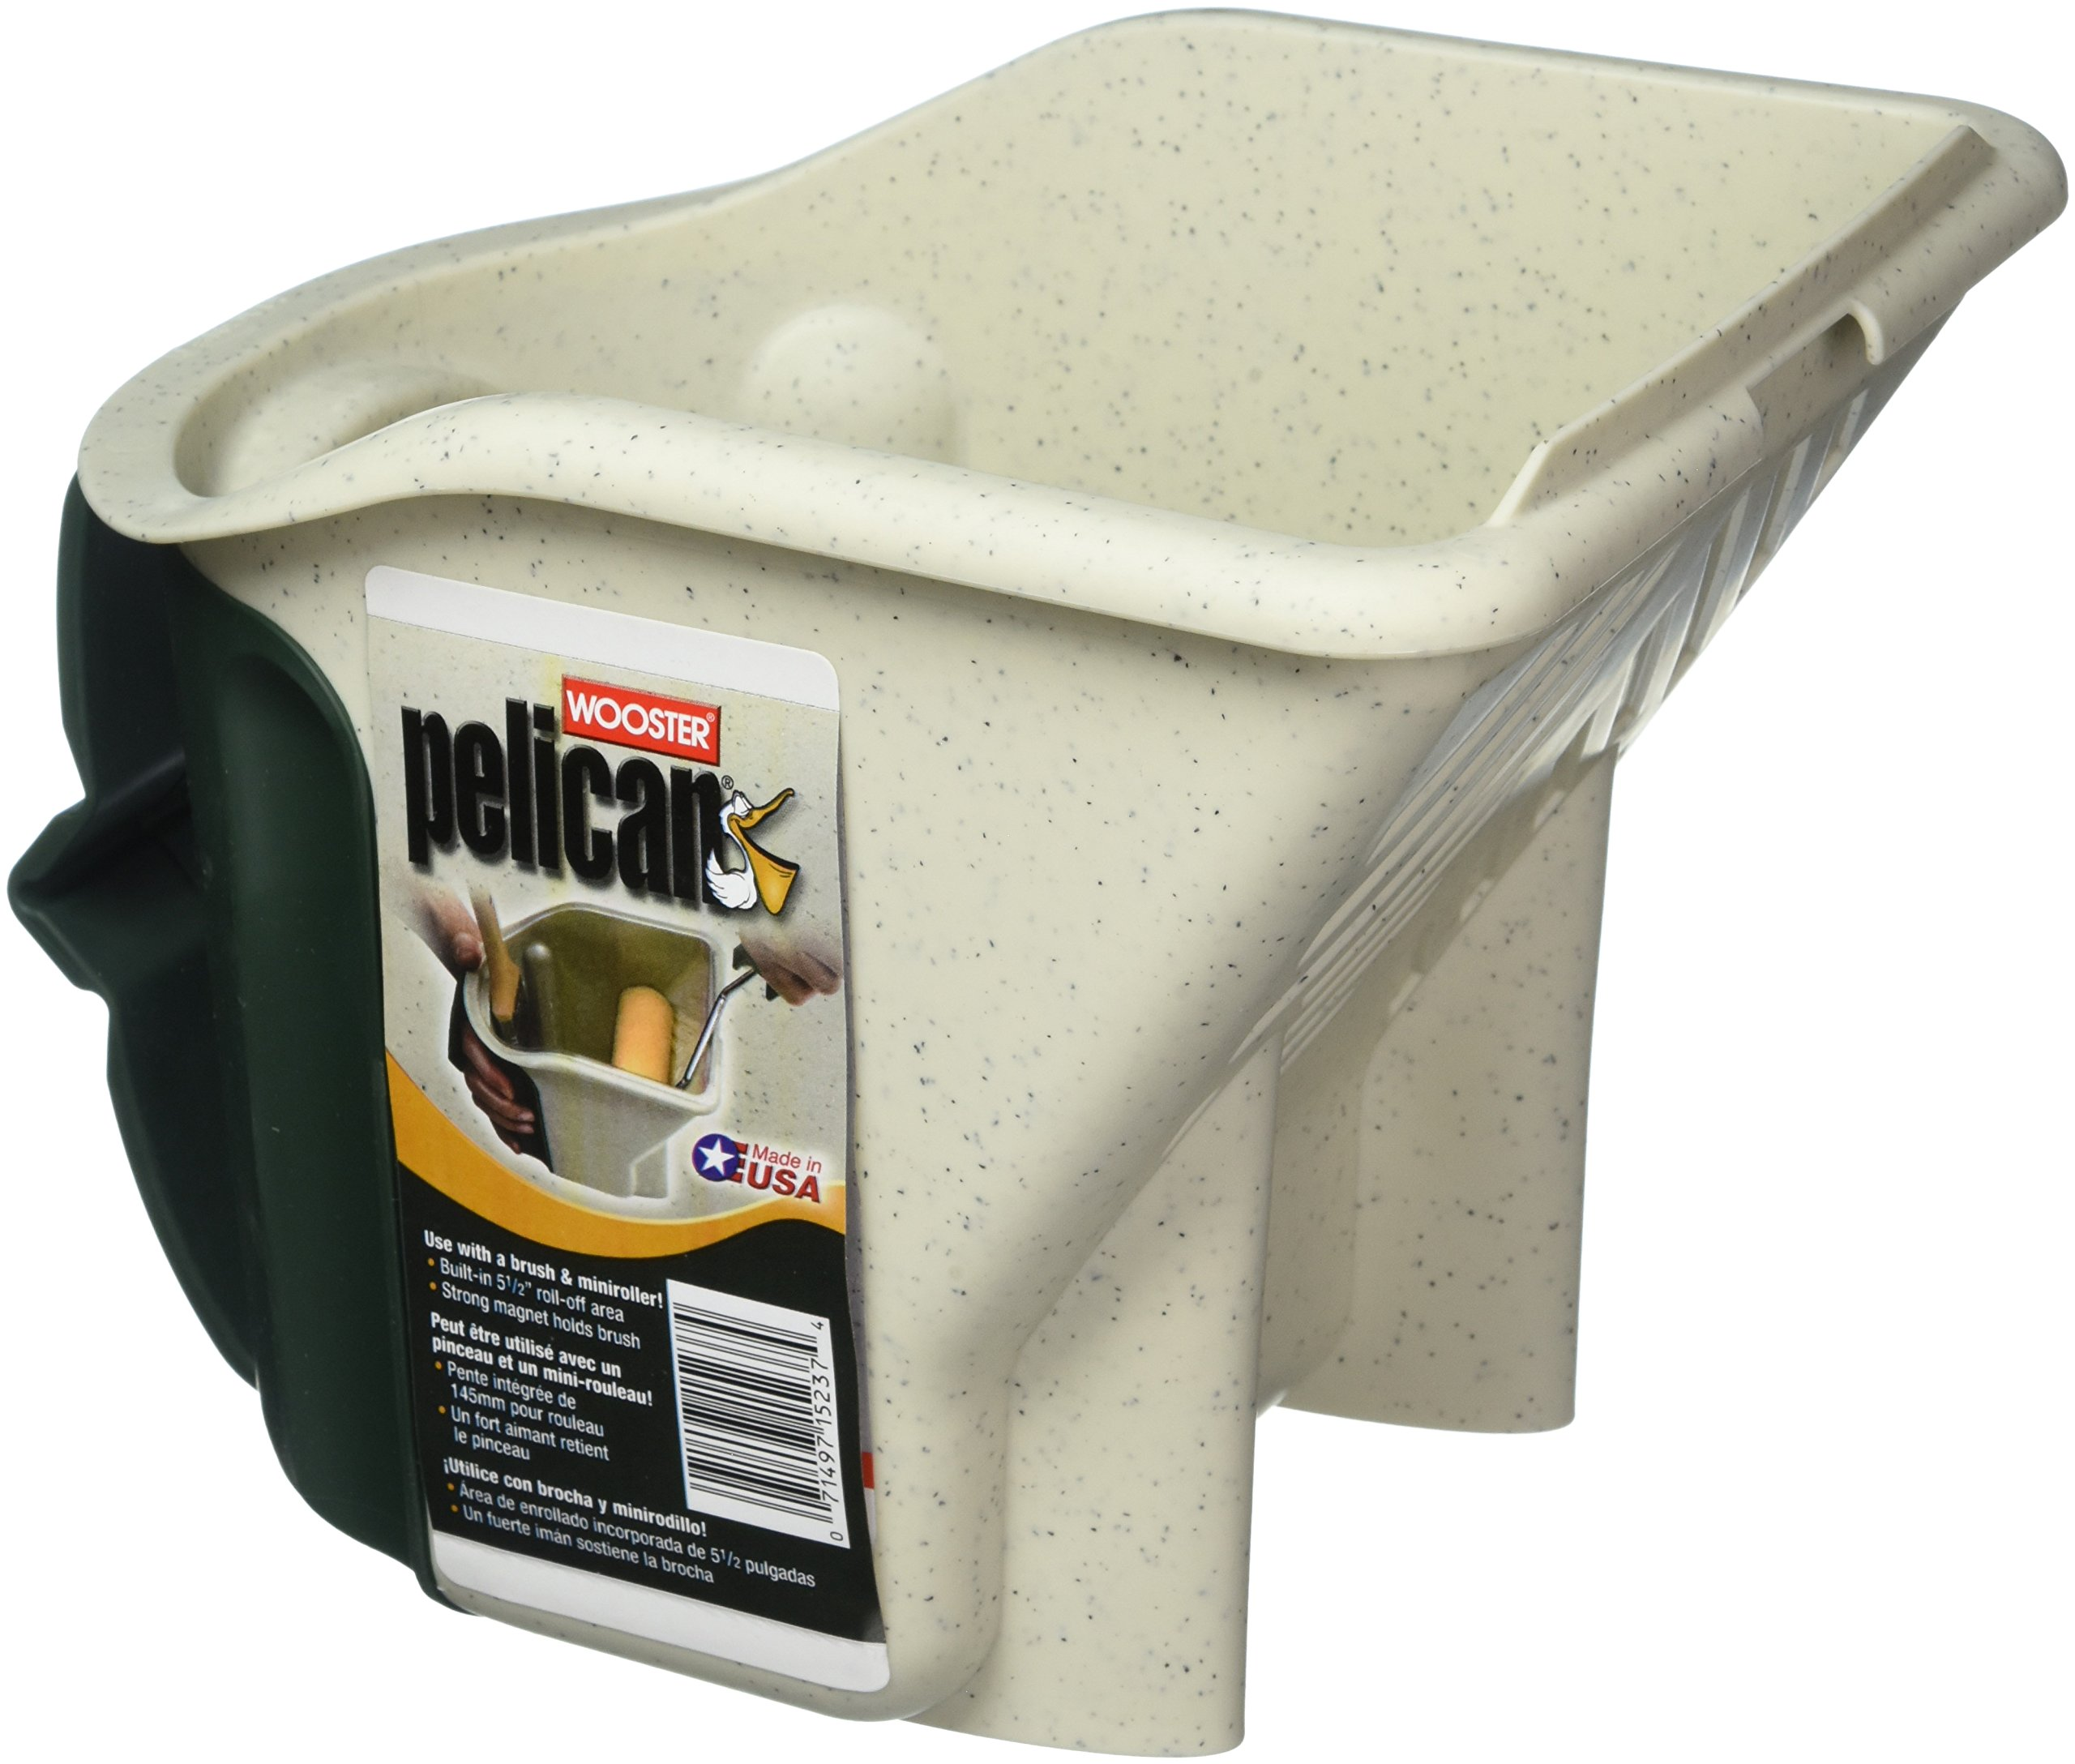 Wooster Brush 8619 Pelican Hand Held 1 Quart Pail by Wooster Brush